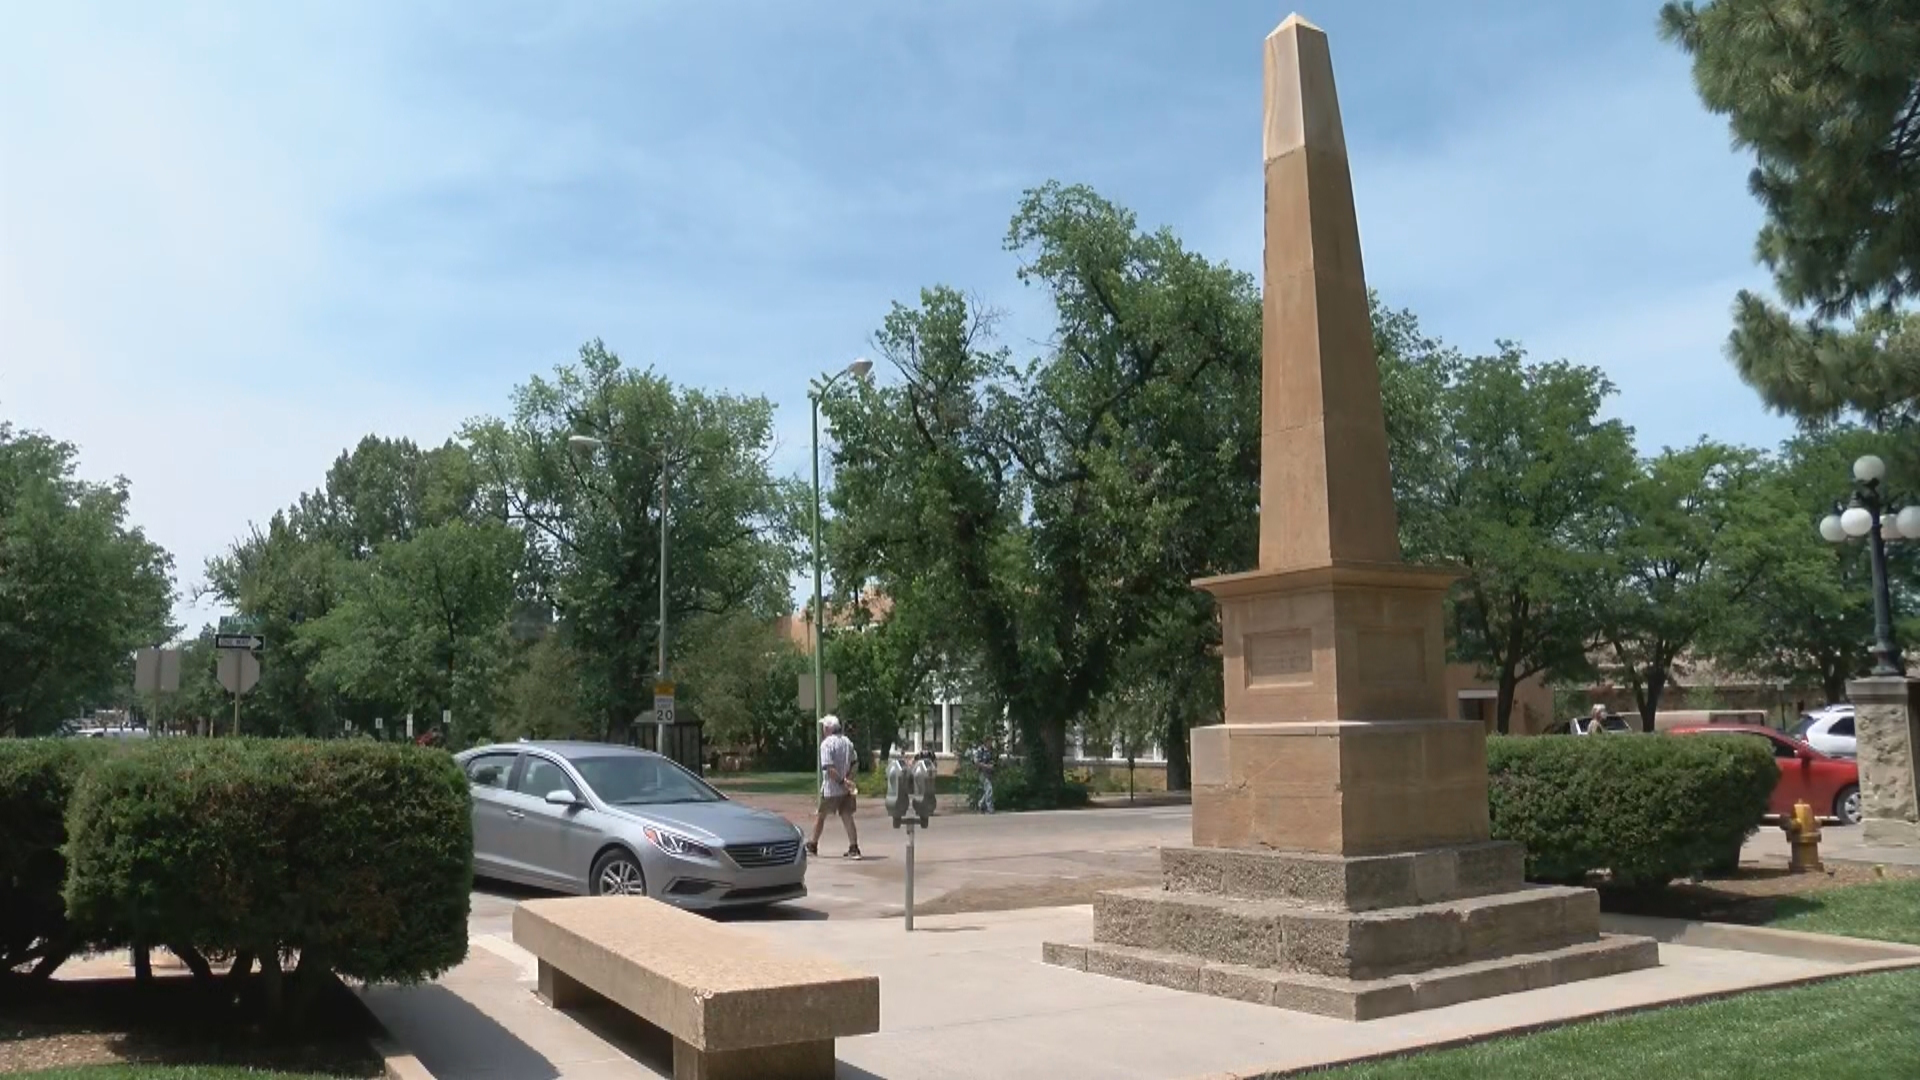 Santa Fe Mayor Orders Removal Of Three Controversial Monuments Krqe News 13